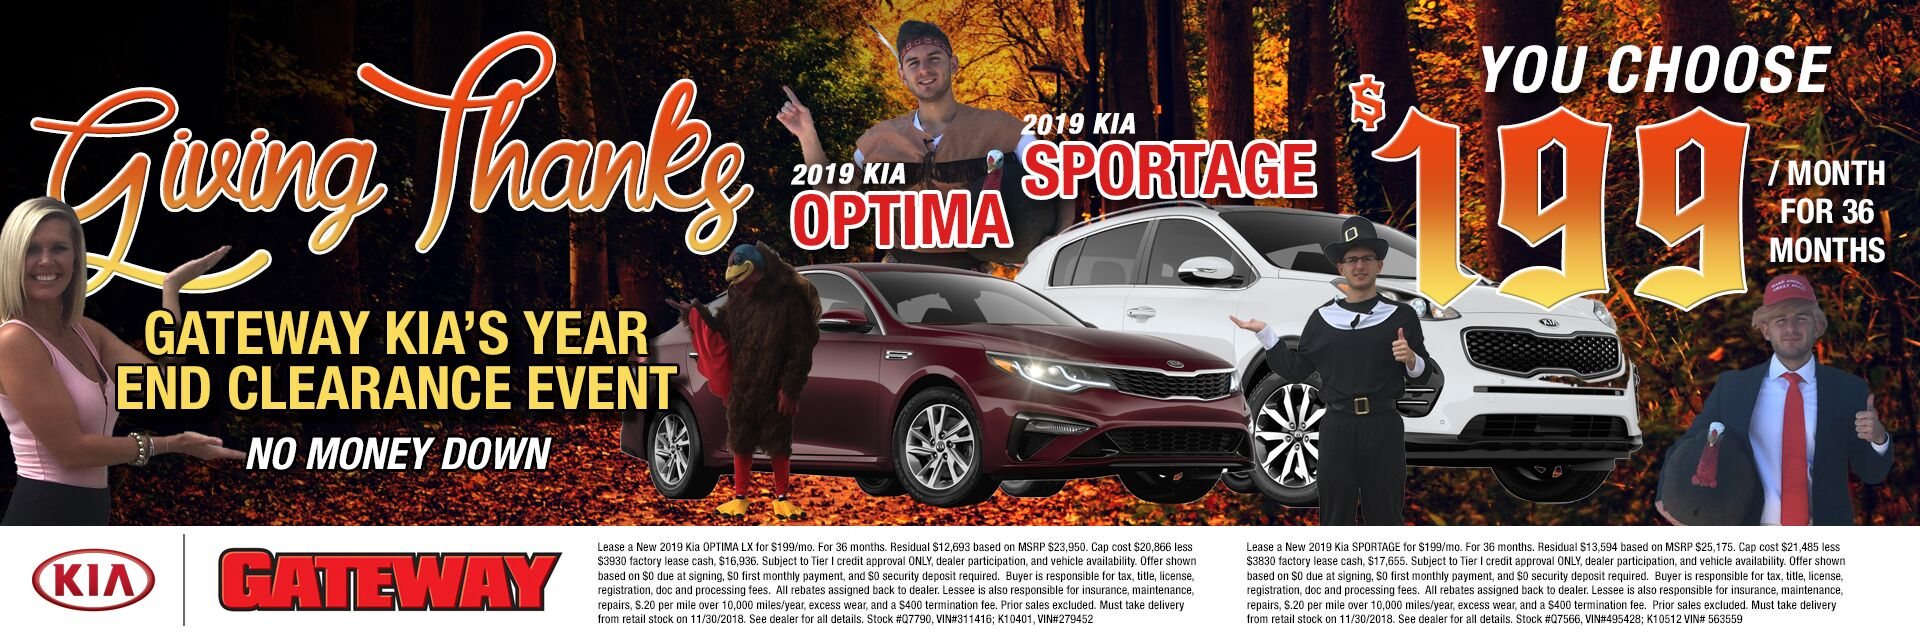 Giving Thanks for Optima or Sportage $199/mo